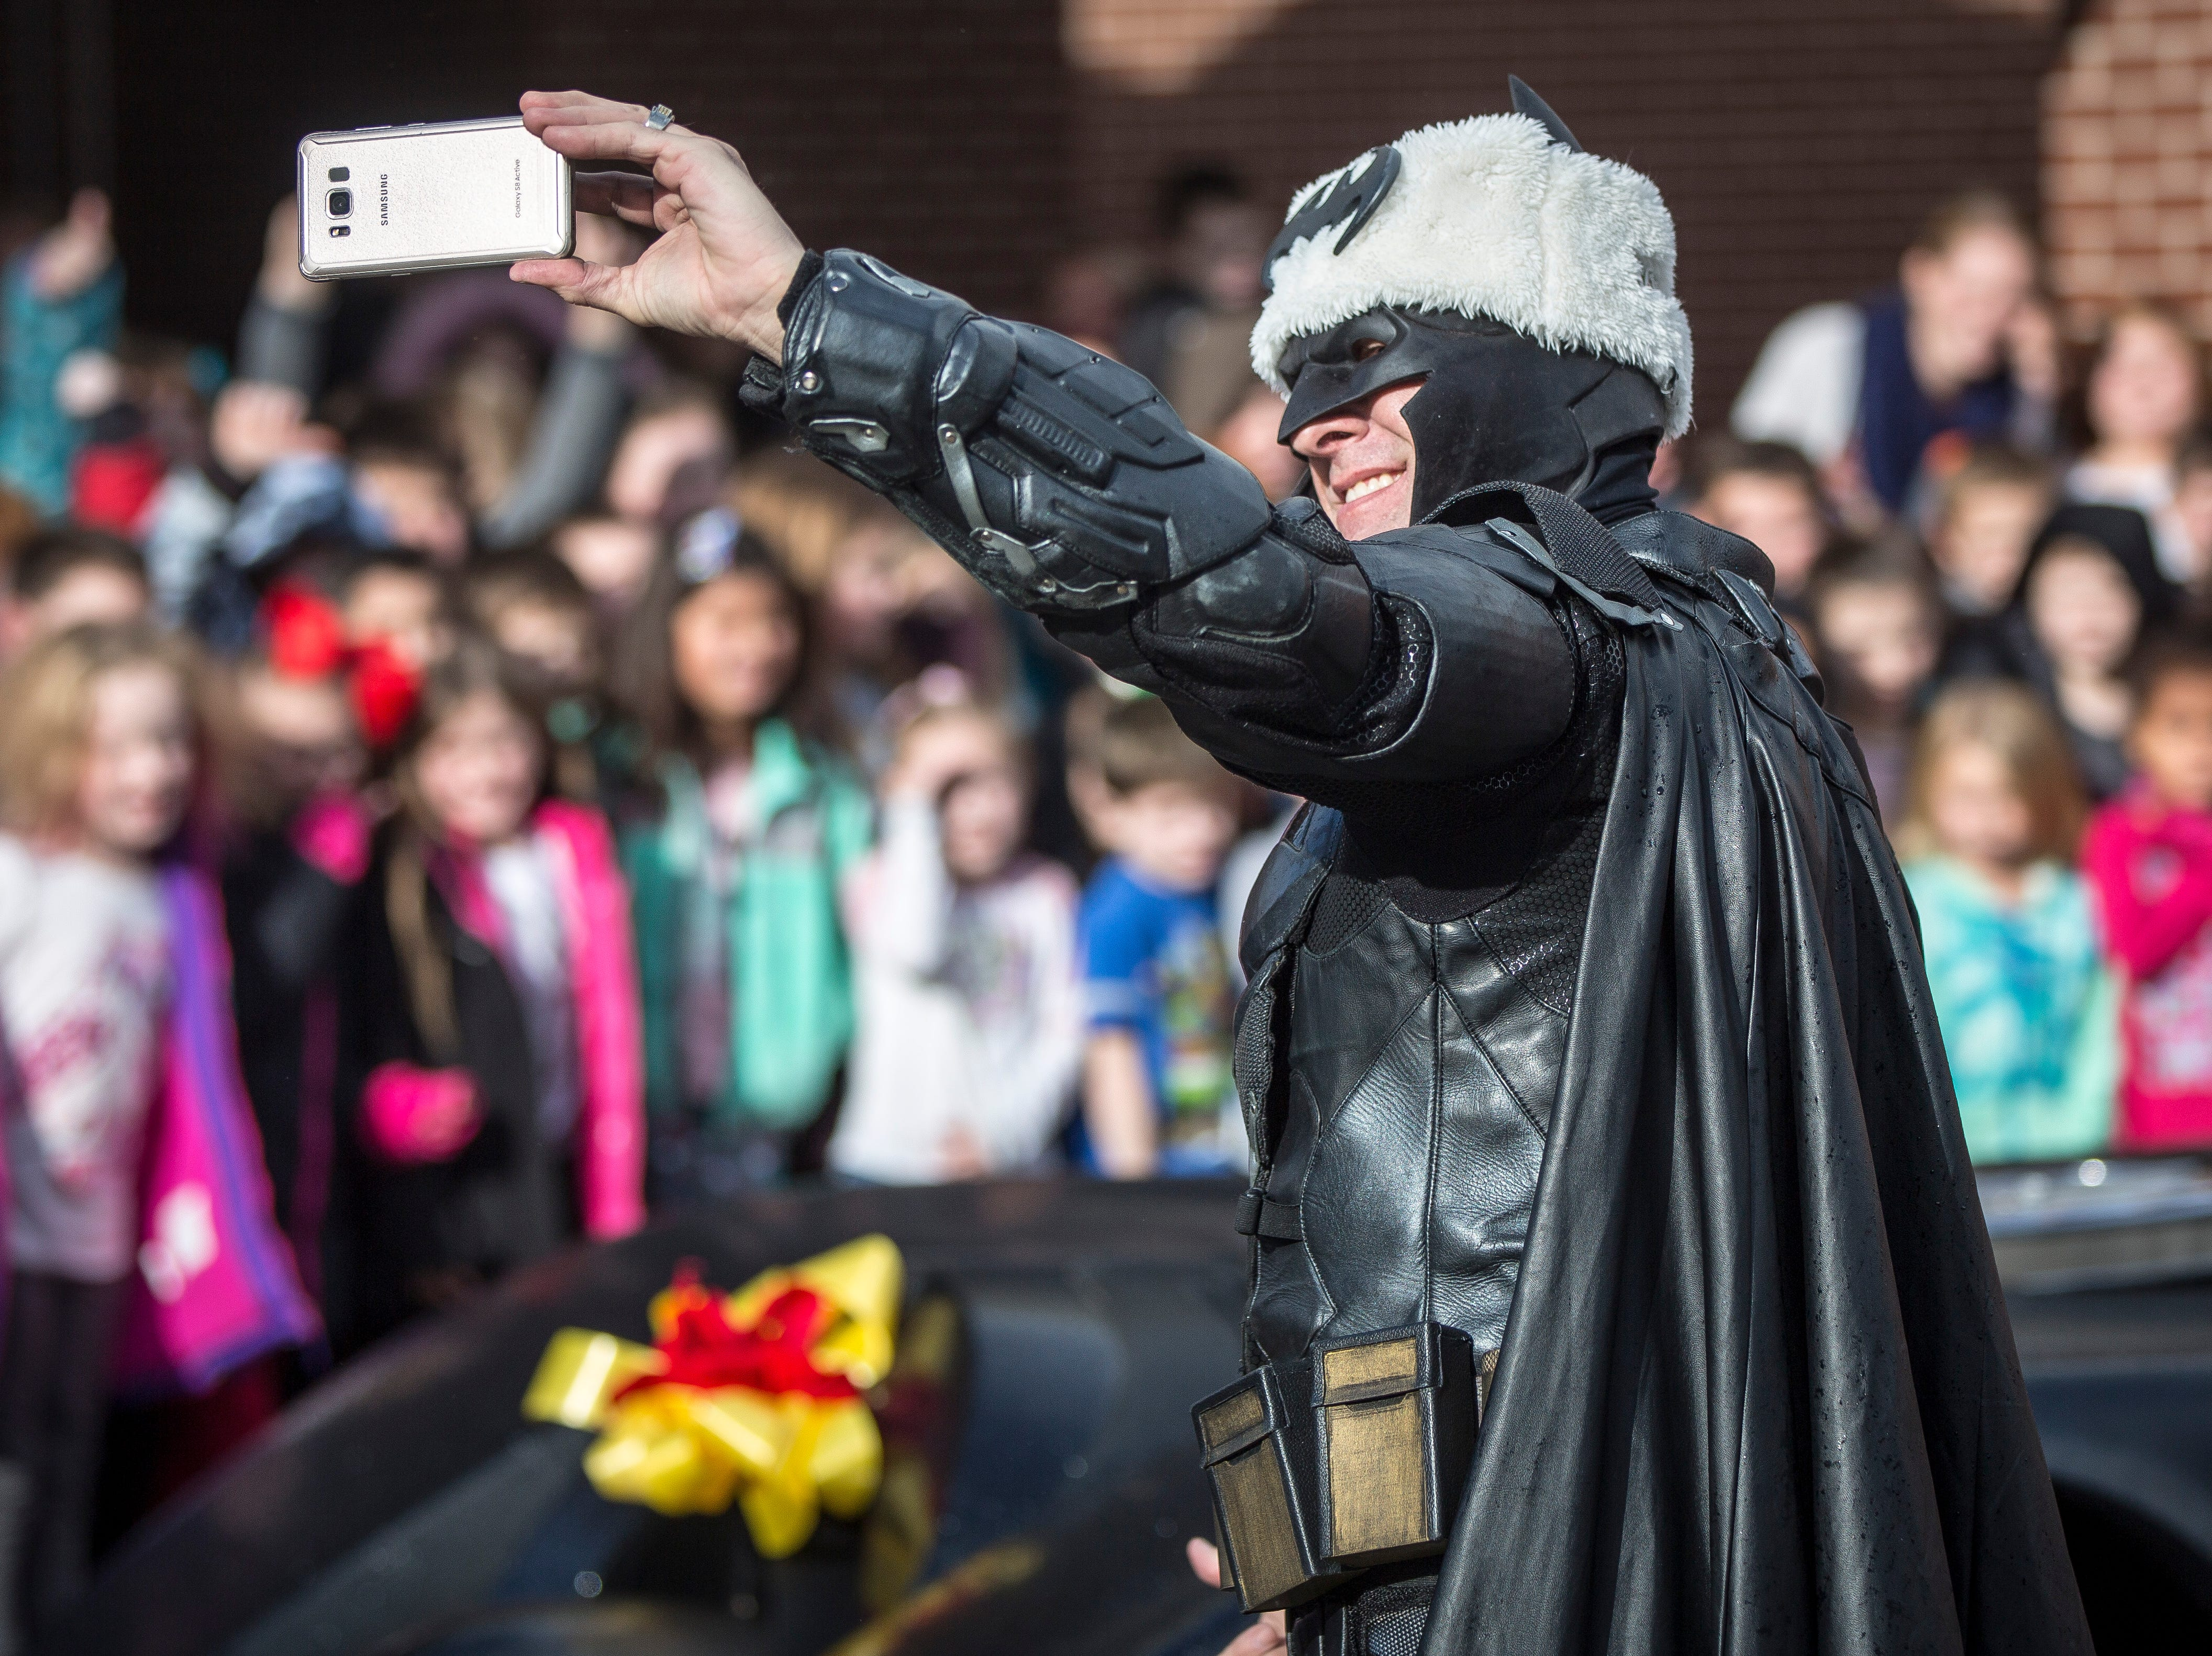 Batman came to Albany Elementary on Monday to visit Christian Daugherty, a young Albany boy who was diagnosed with brain cancer almost a year ago.